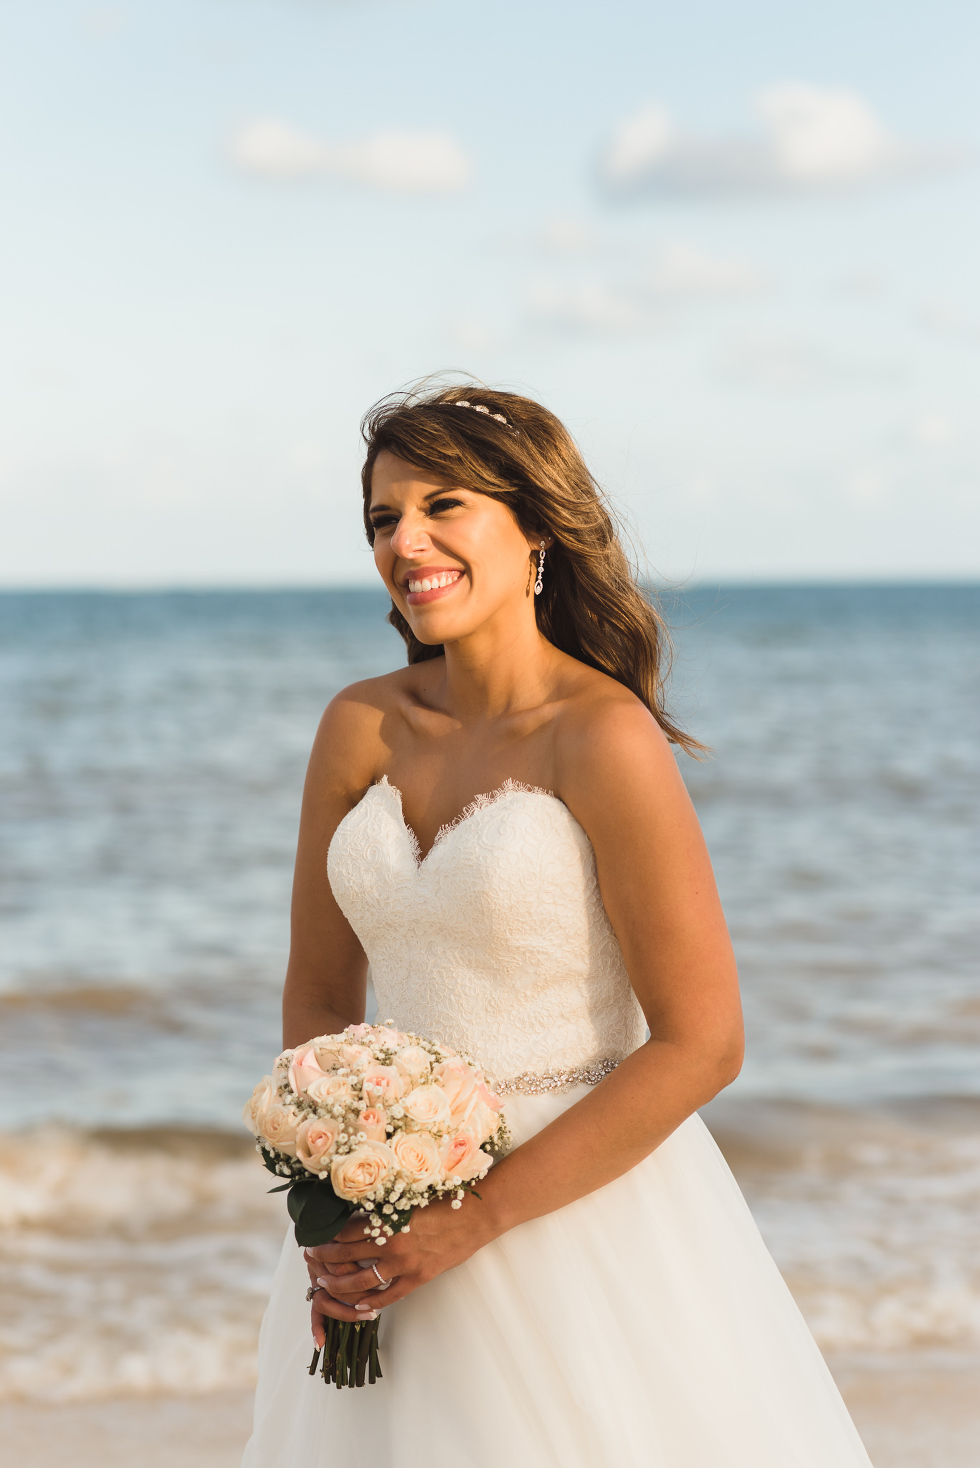 bride smiling and holding bouquet on the beach after ceremony at Now Sapphire Resort in Mexico